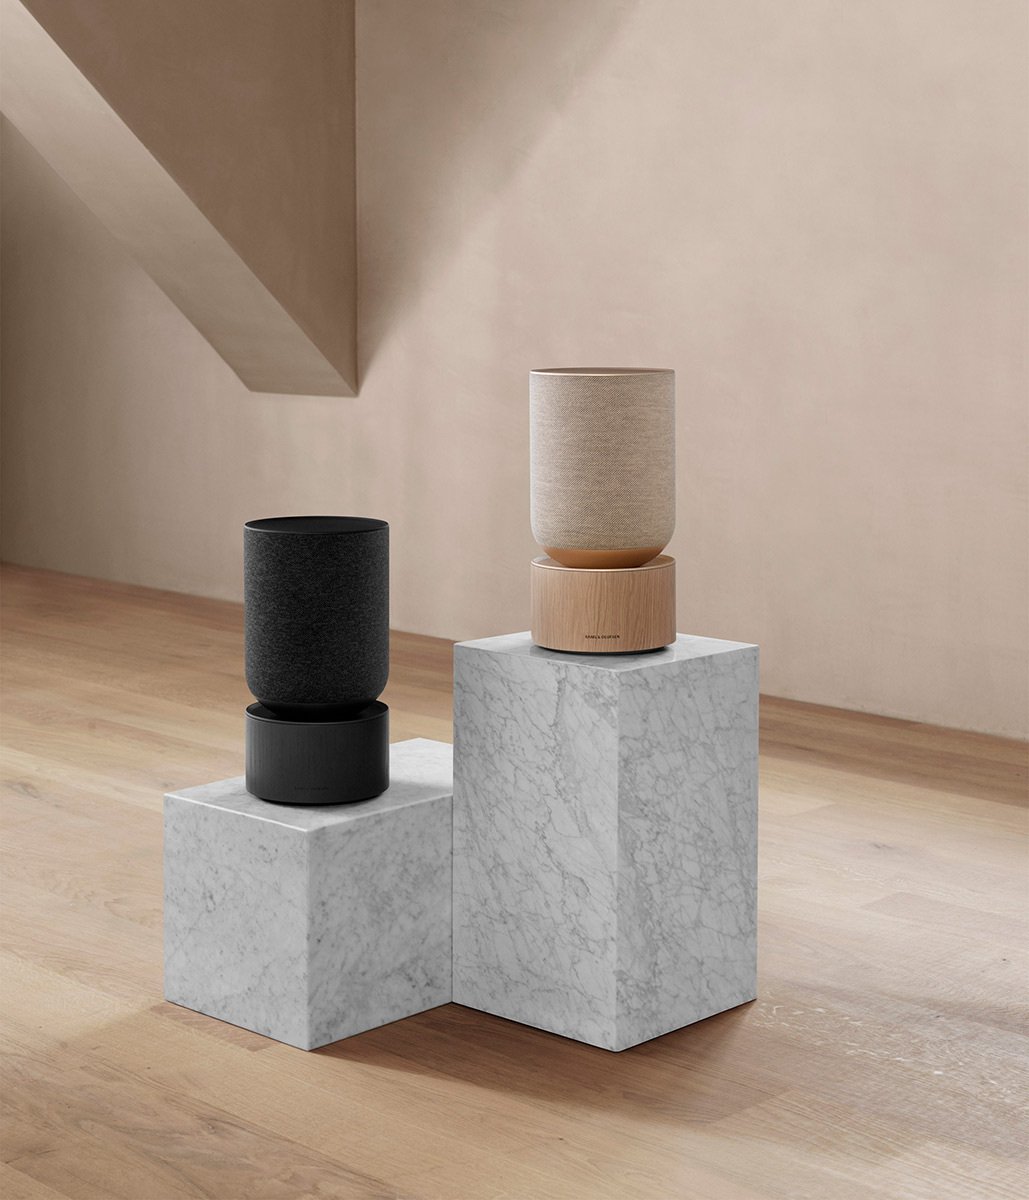 Balance-Layer-Bang-Olufsen-02